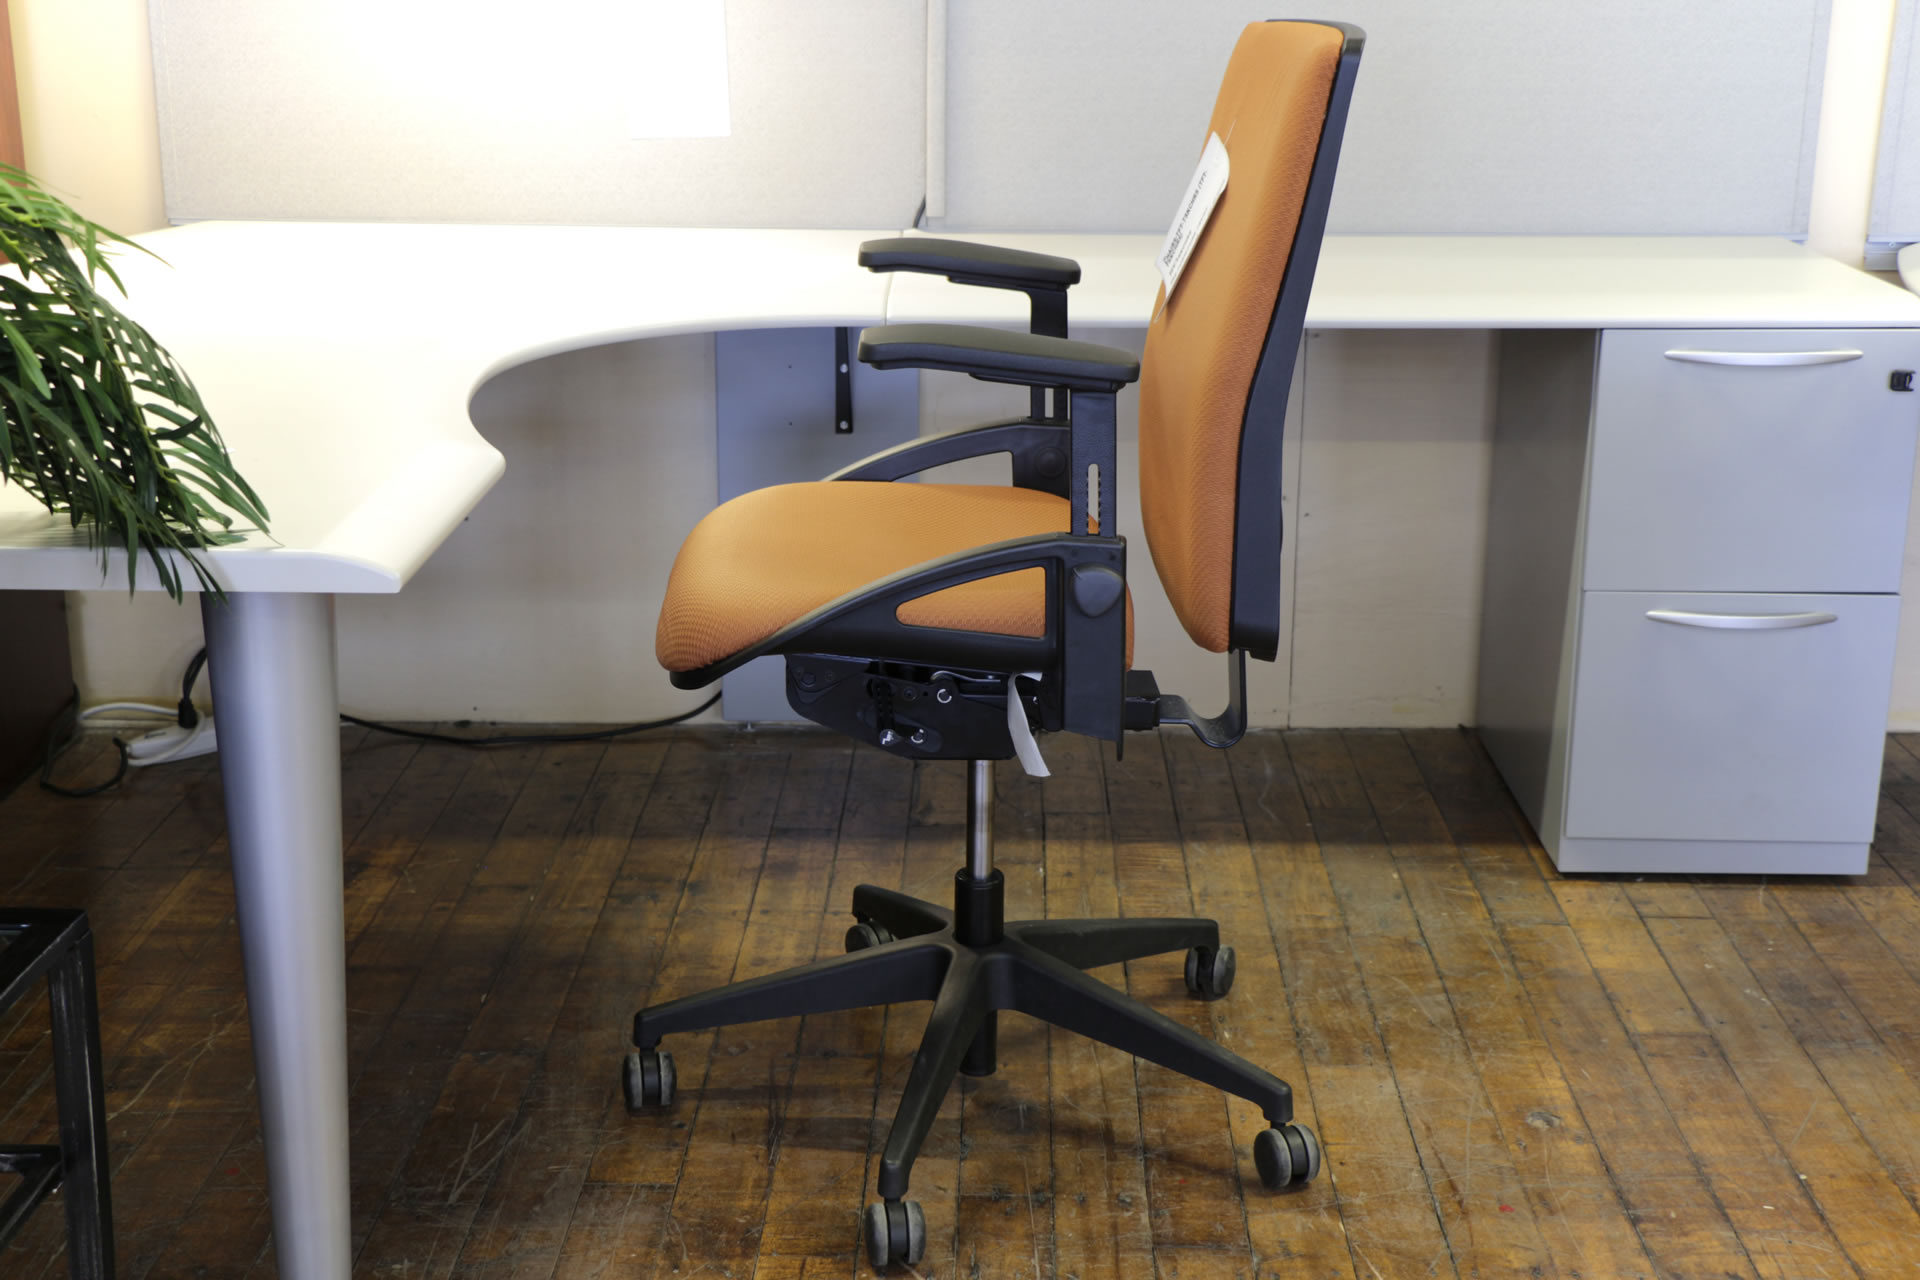 Kimball Approach High Back Office Ergonomic Chairs